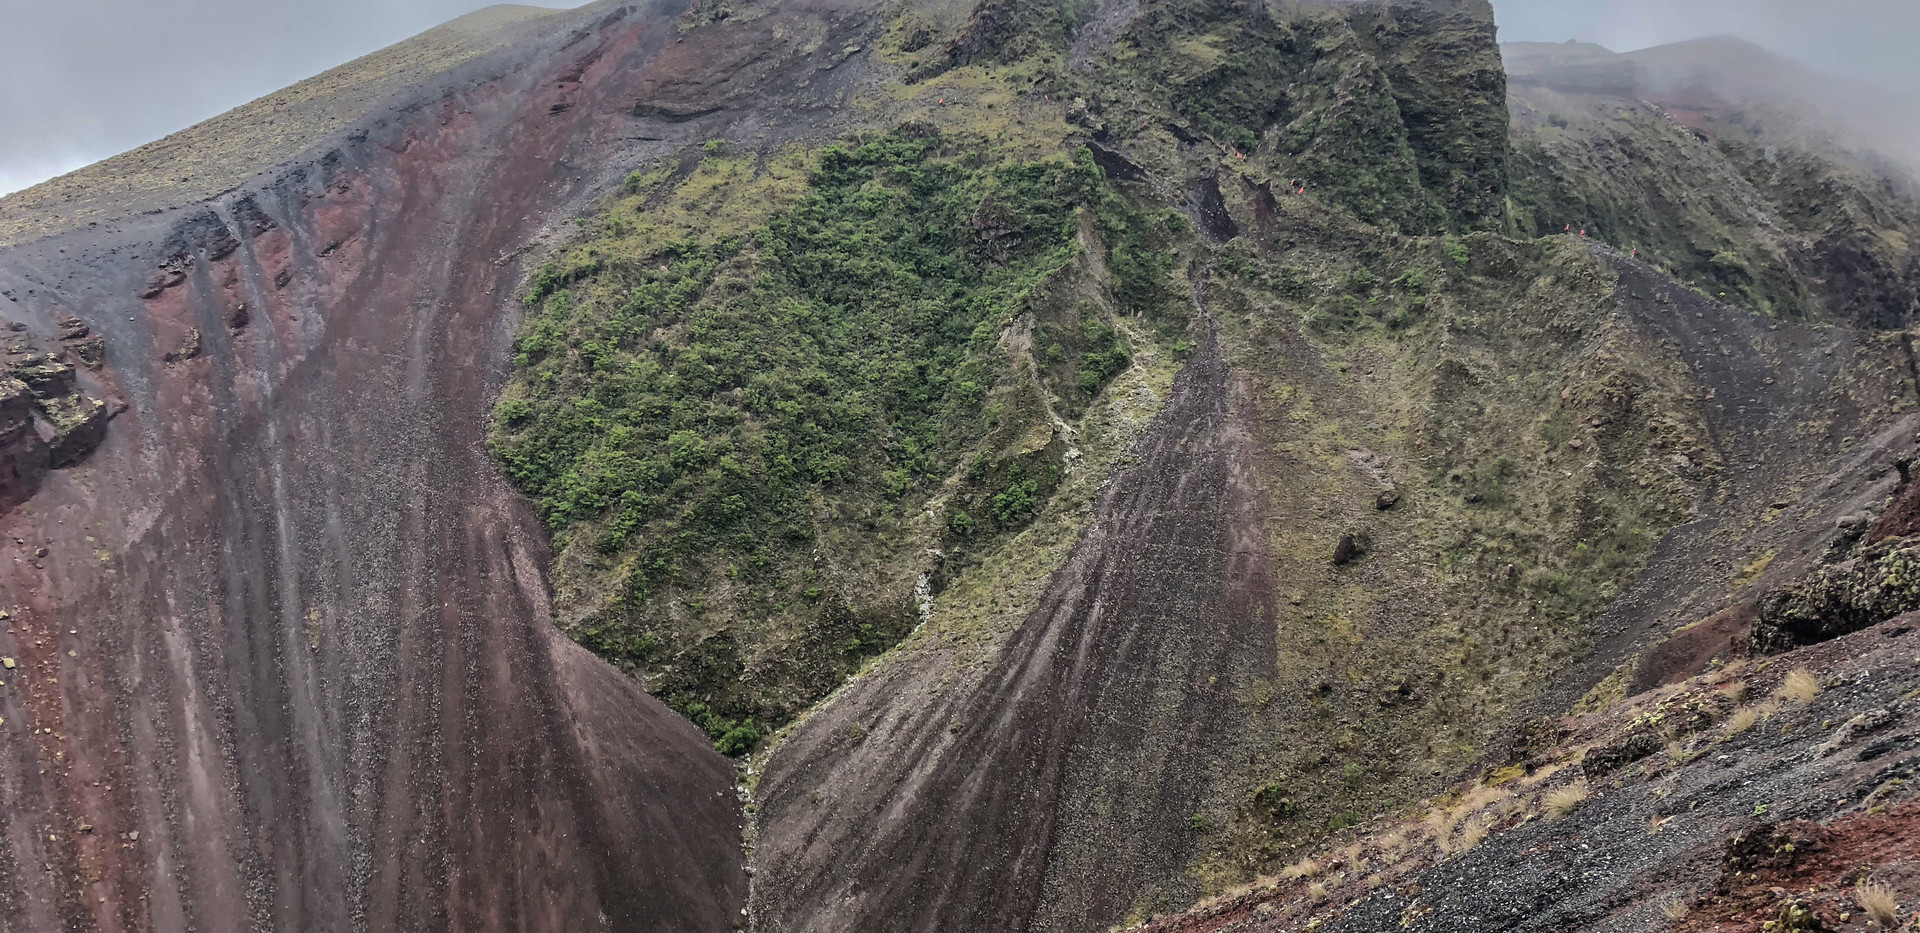 The Crater we Ran (I fell) Down